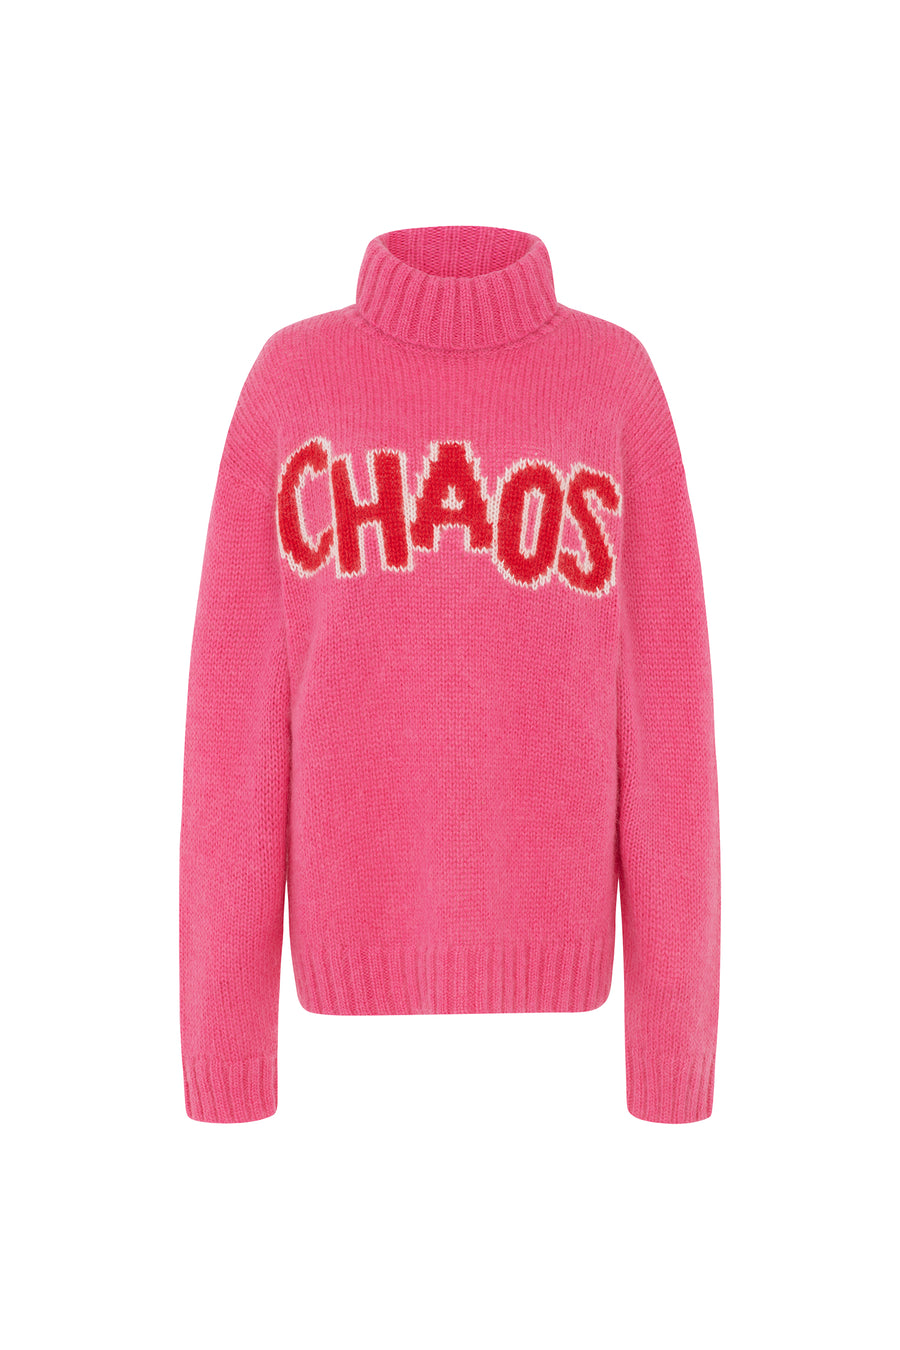 Chaos Oversized Jumper